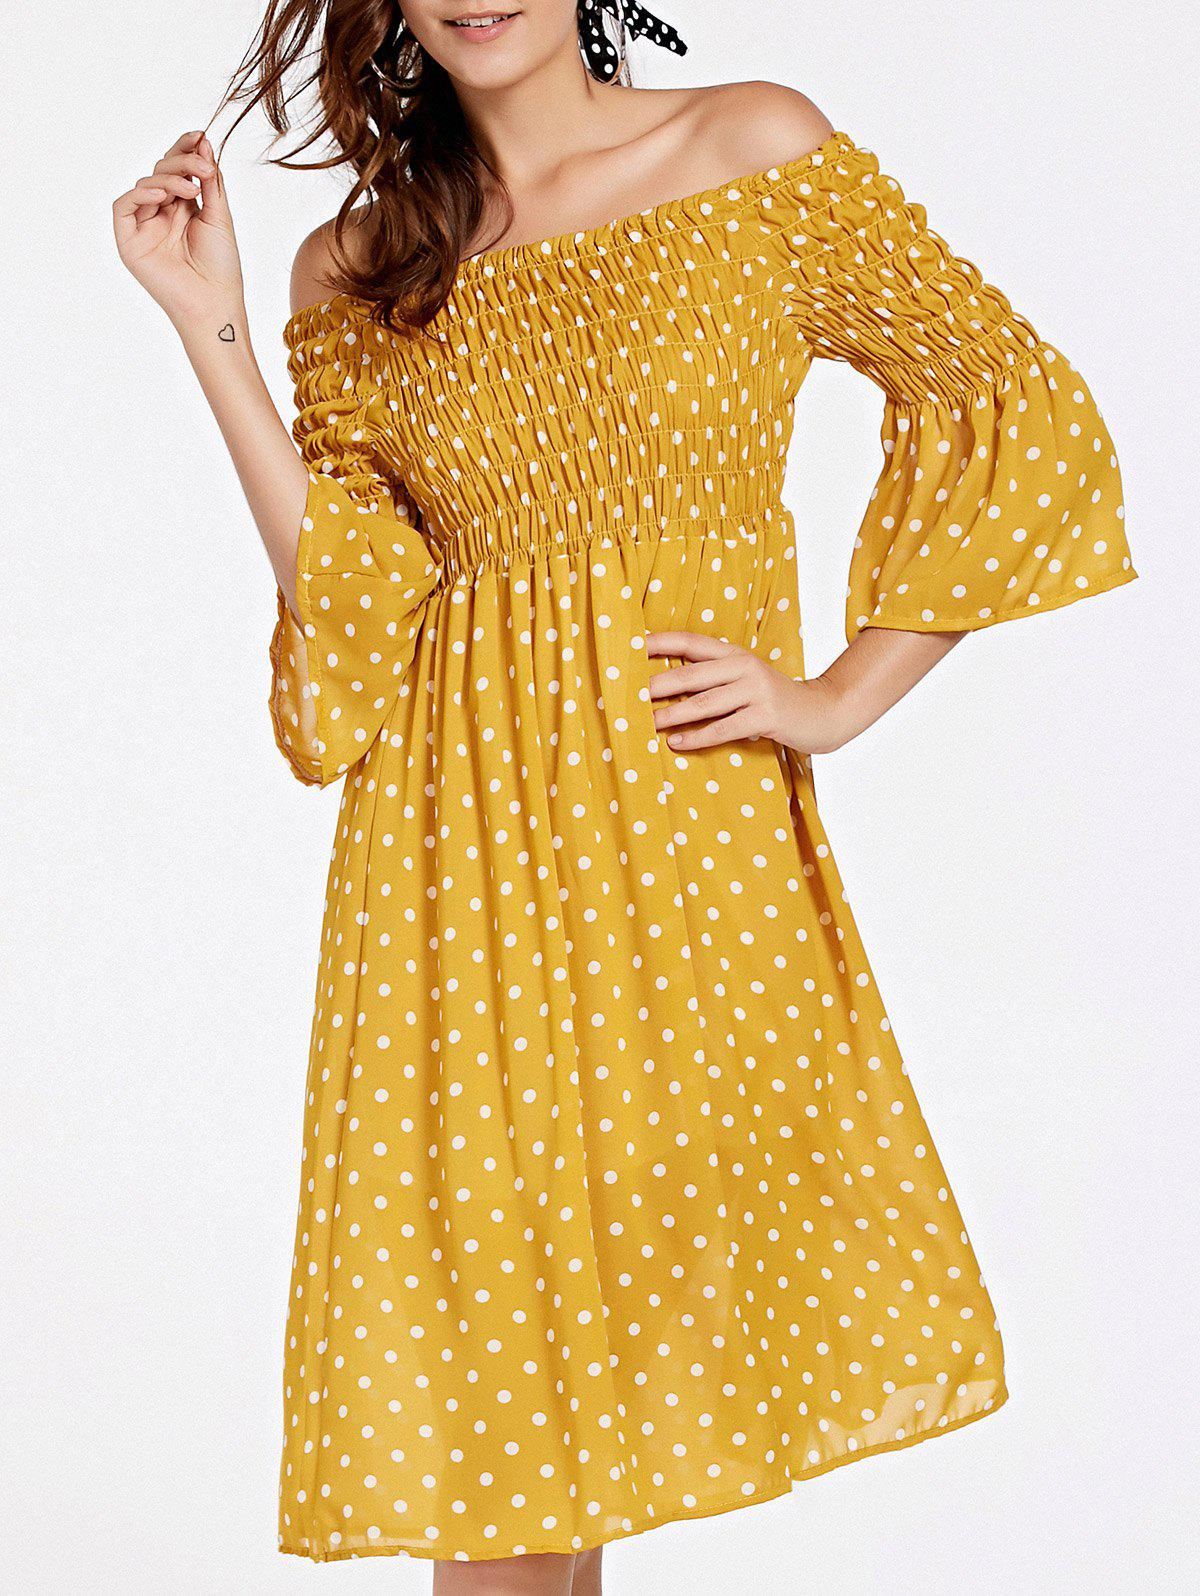 Stylish Polka Dot 3/4 Sleeve Off-The-Shoulder Women's Dress - ONE SIZE(FIT SIZE XS TO M) YELLOW